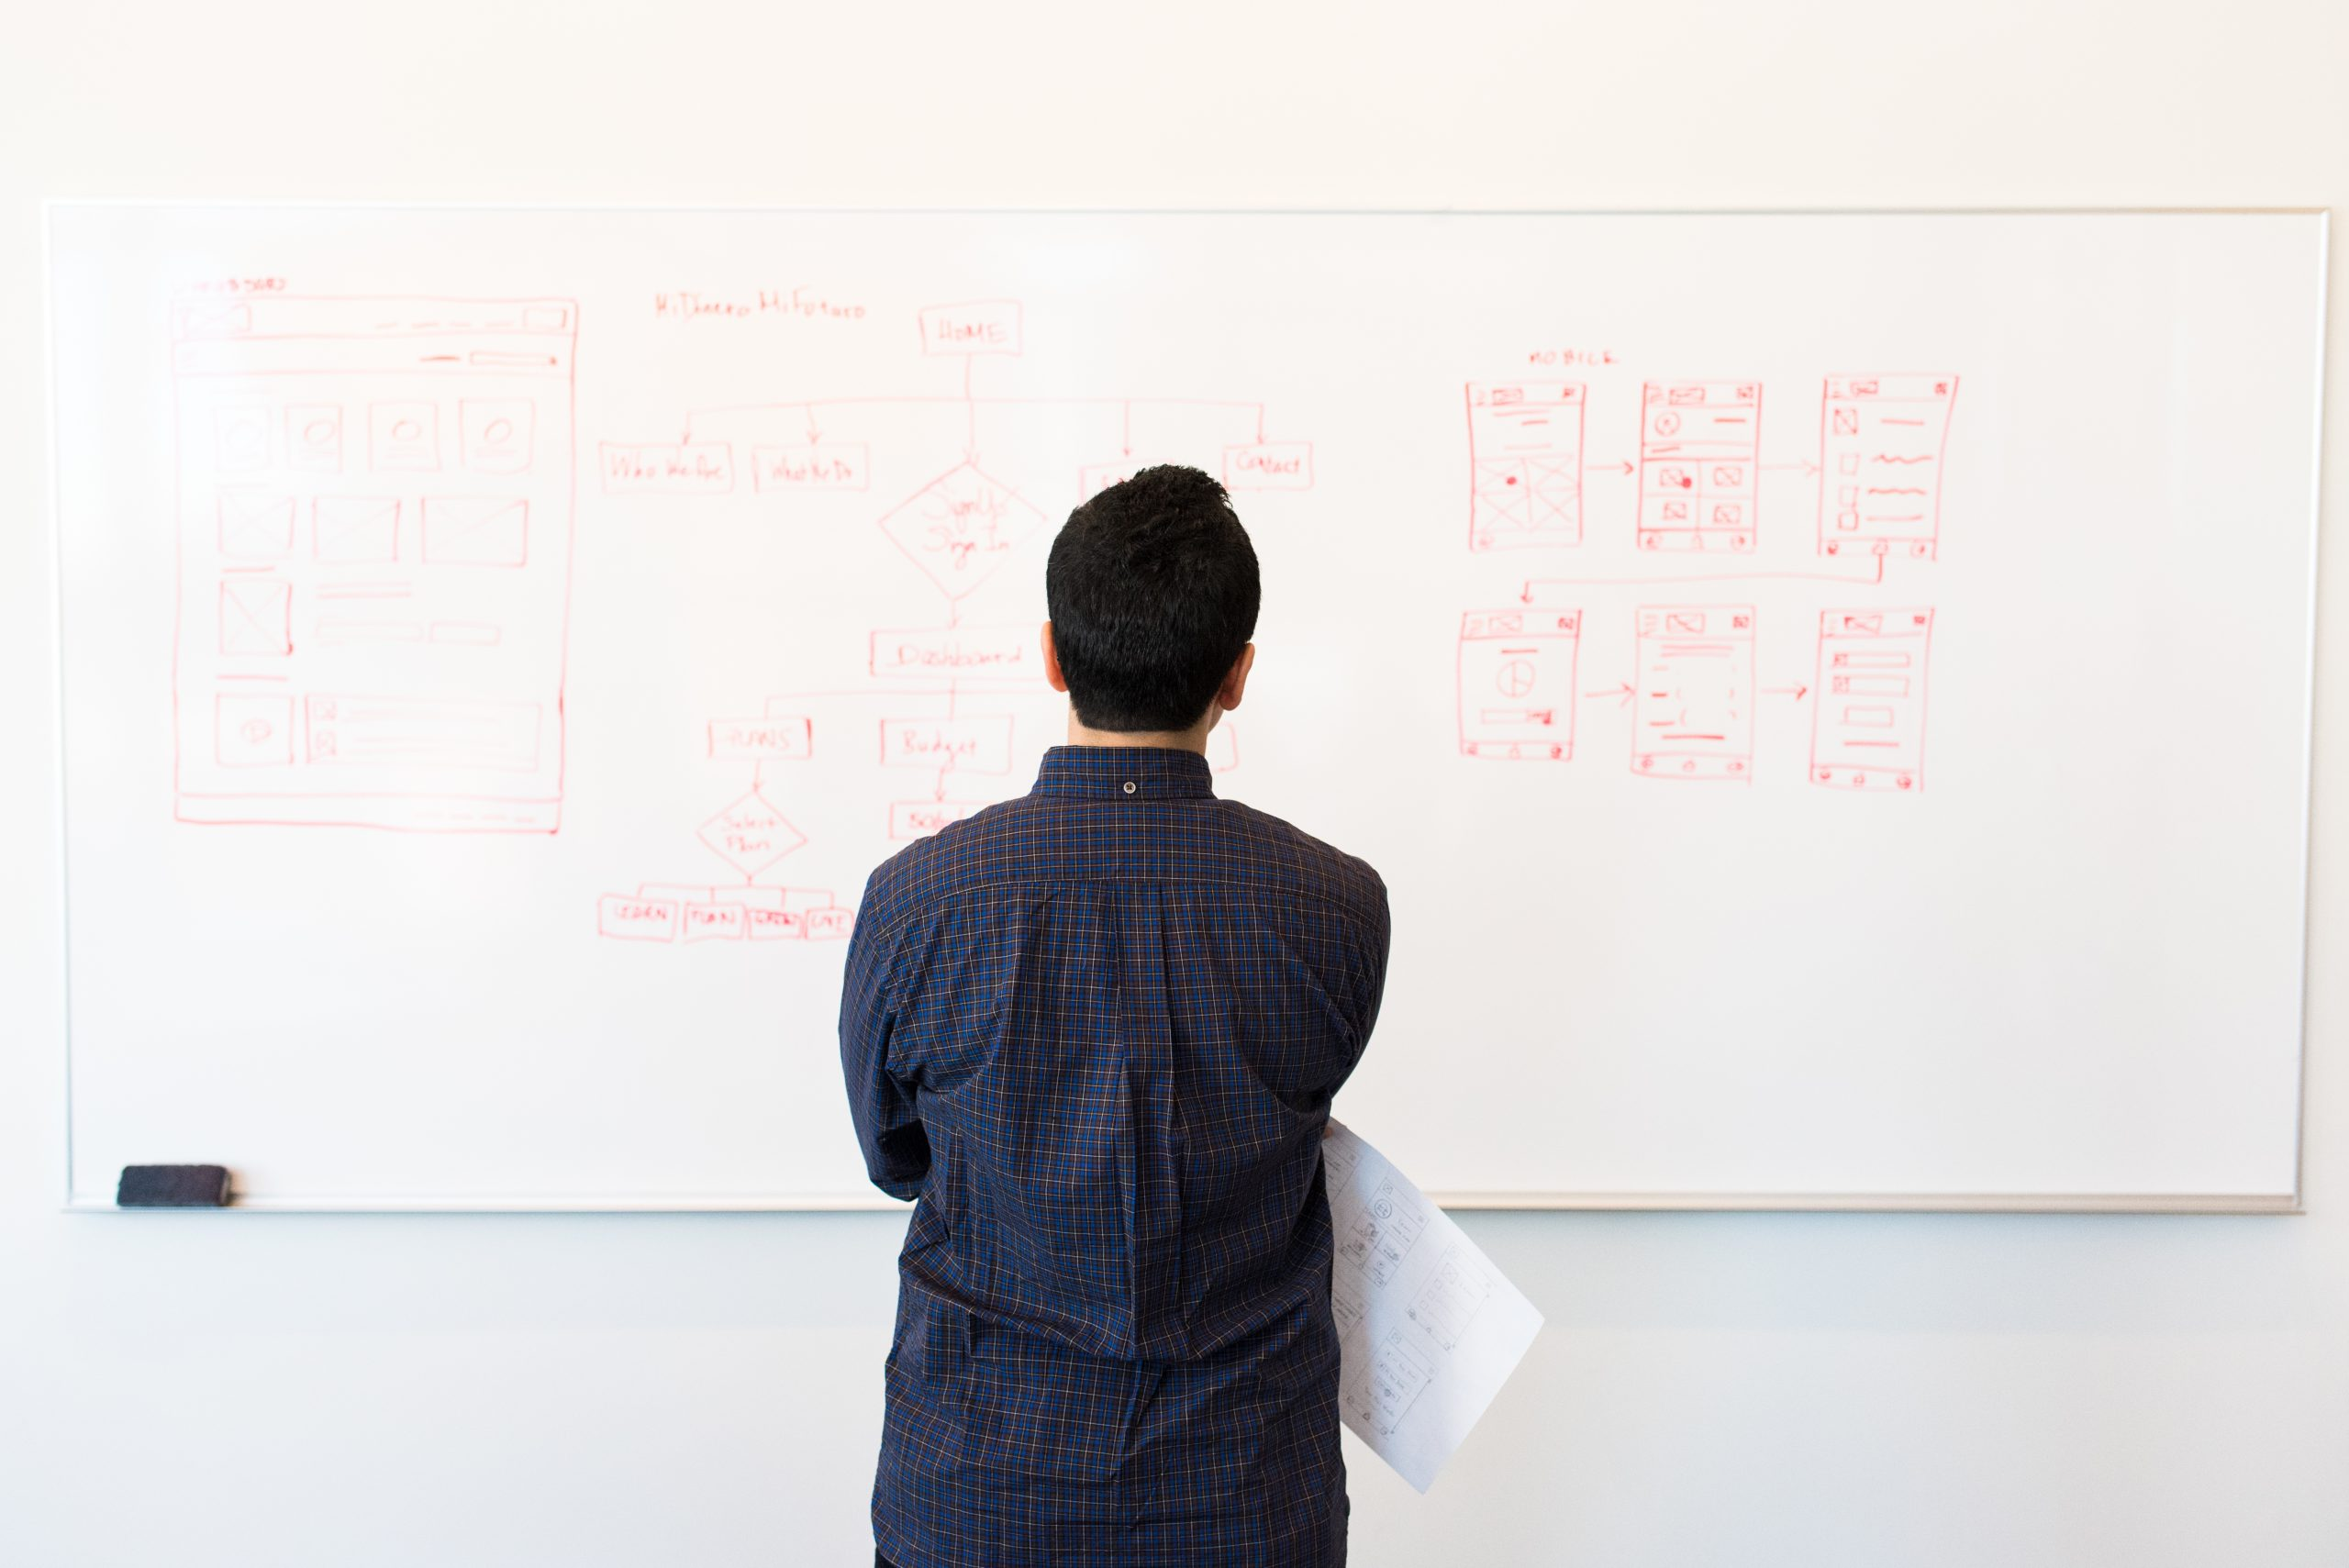 Web engineering, system architecture, and integration consulting